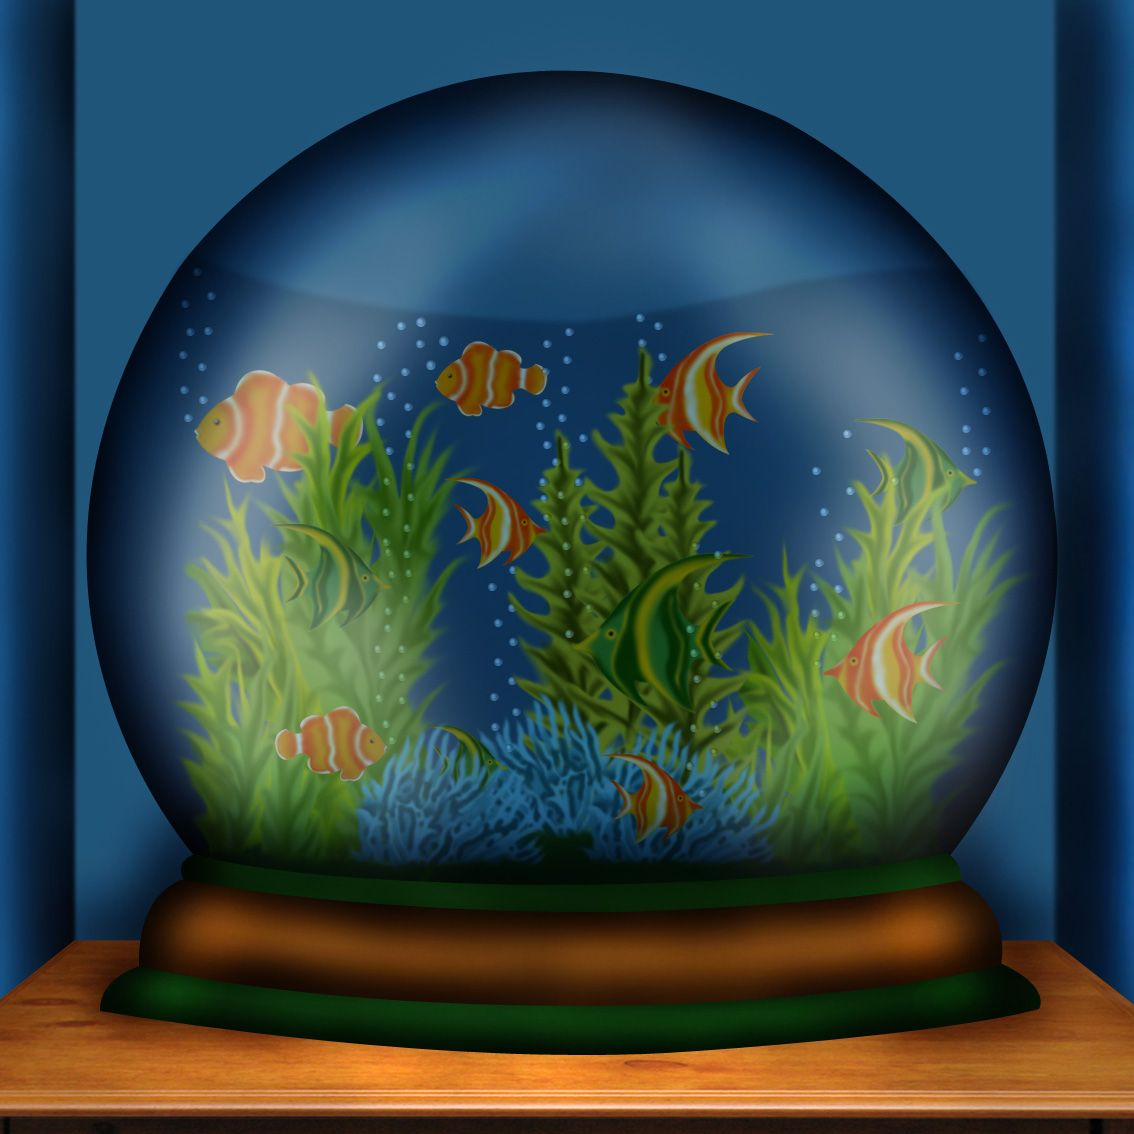 Fish tank picture, by chakra1985 for: snow globes photoshop contest ...